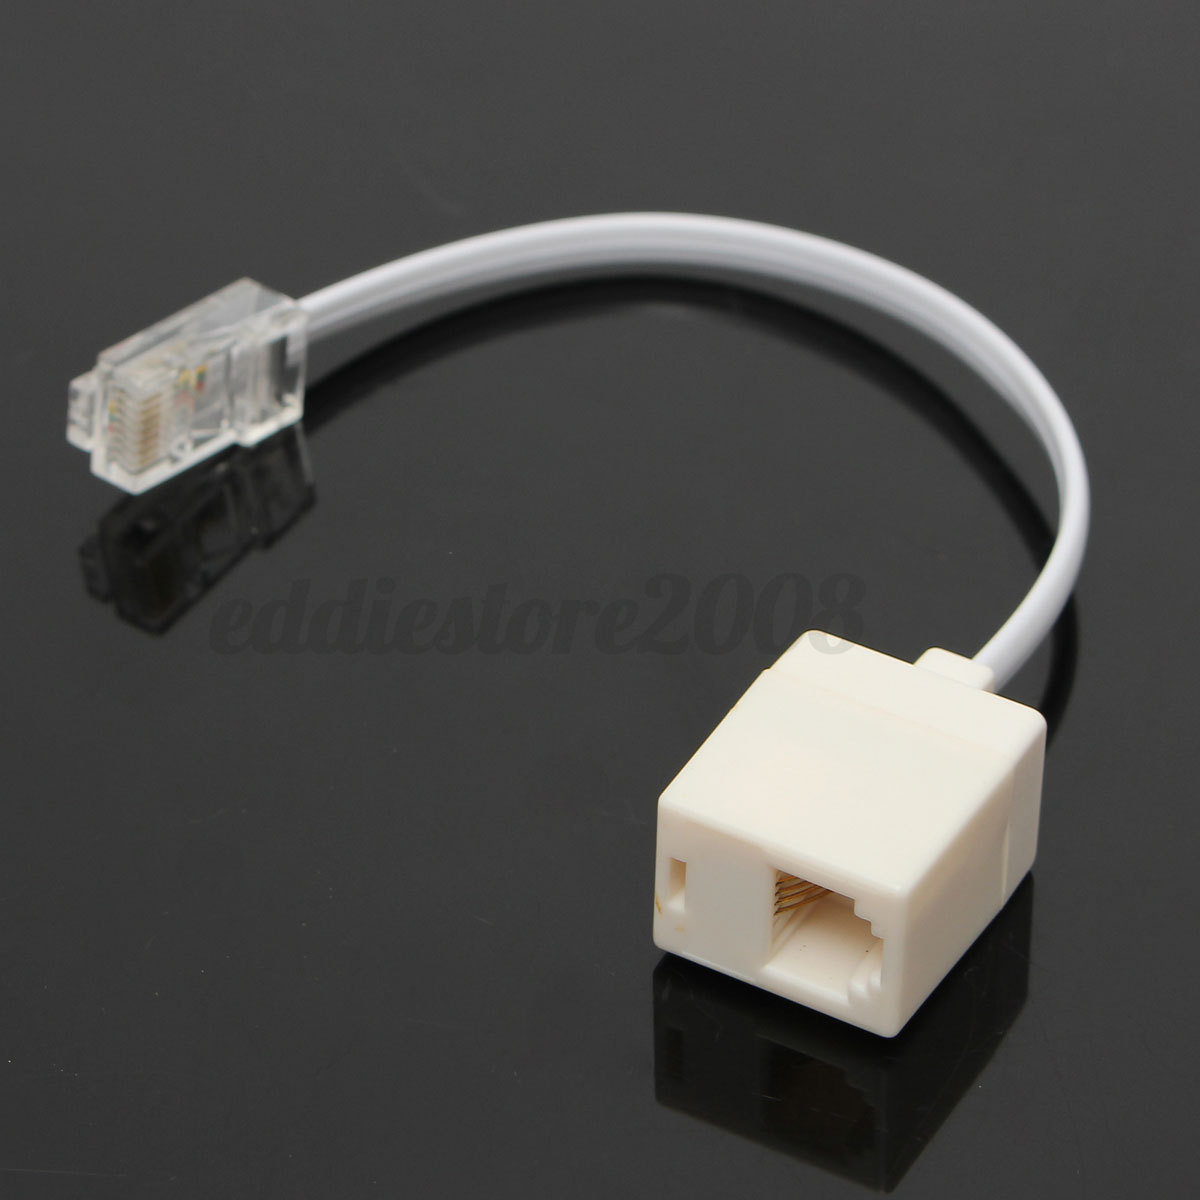 rj11 6p4c female to ethernet rj45 8p8c male f/m adapter ... rj45 phone wiring rj11 phone wiring diagram